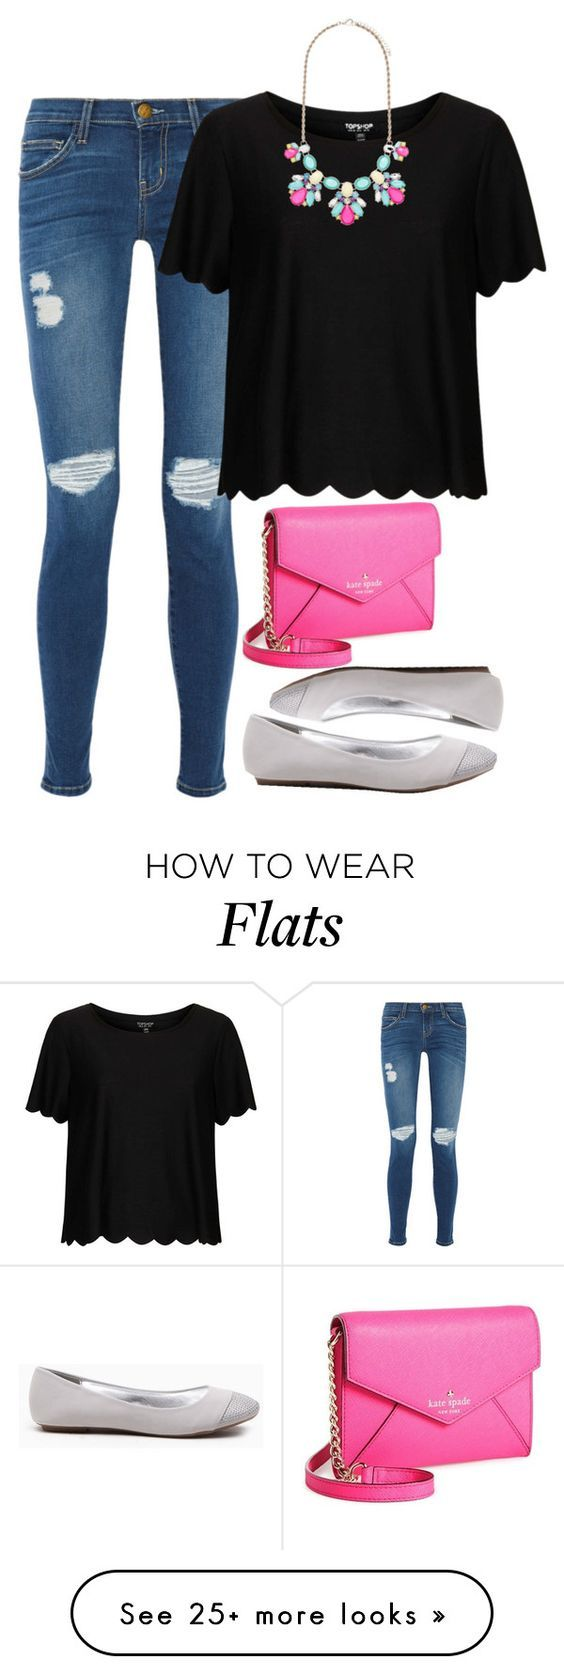 """""""Pops of pink"""" by meljordrum on Polyvore featuring Current/Elliott, Kate Spade, Topshop and Forever New"""